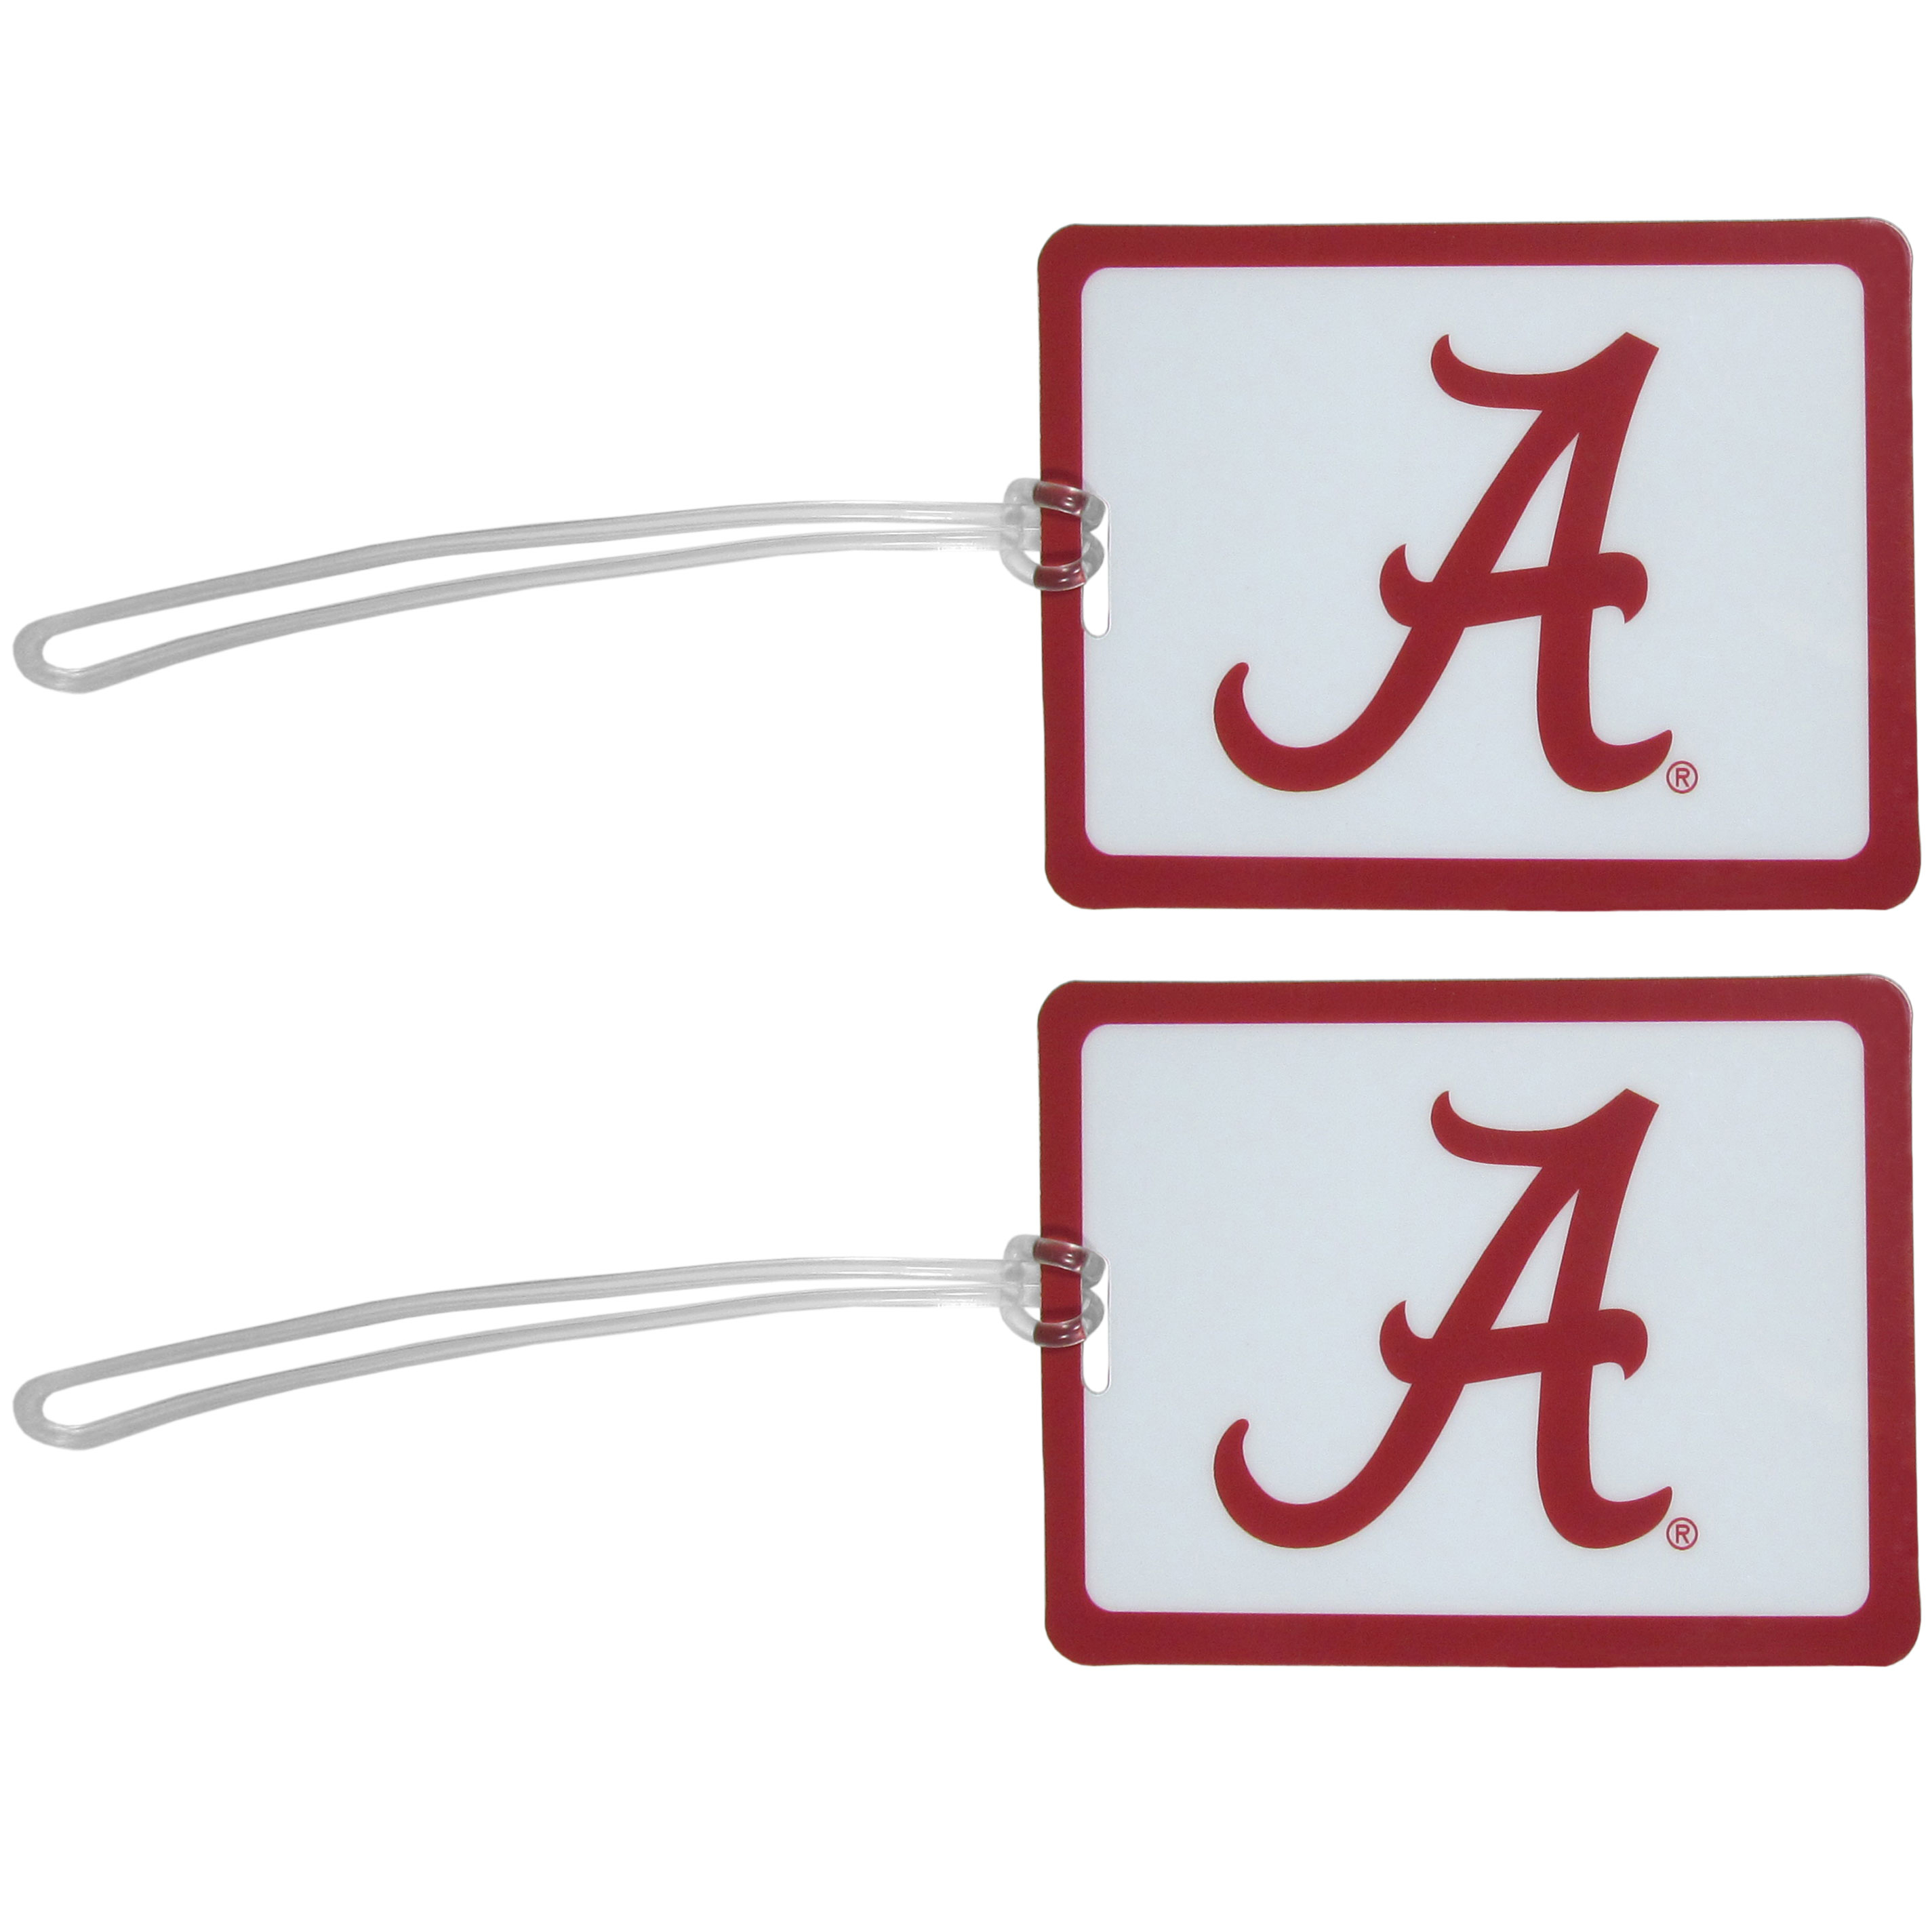 Alabama Crimson Tide Vinyl Luggage Tag, 2pk - Tired of trying to spot your suitcase or bag in a sea of luggage? Try our large and colorful Alabama Crimson Tide luggage tags. The tag is 4x3 inches and has a 5 inch cord to attach it easily to your bags, backpacks or luggage. The front of the tag features the team logo in a bright, team colored background and you can write you name, address and phone number on the back of the tag.